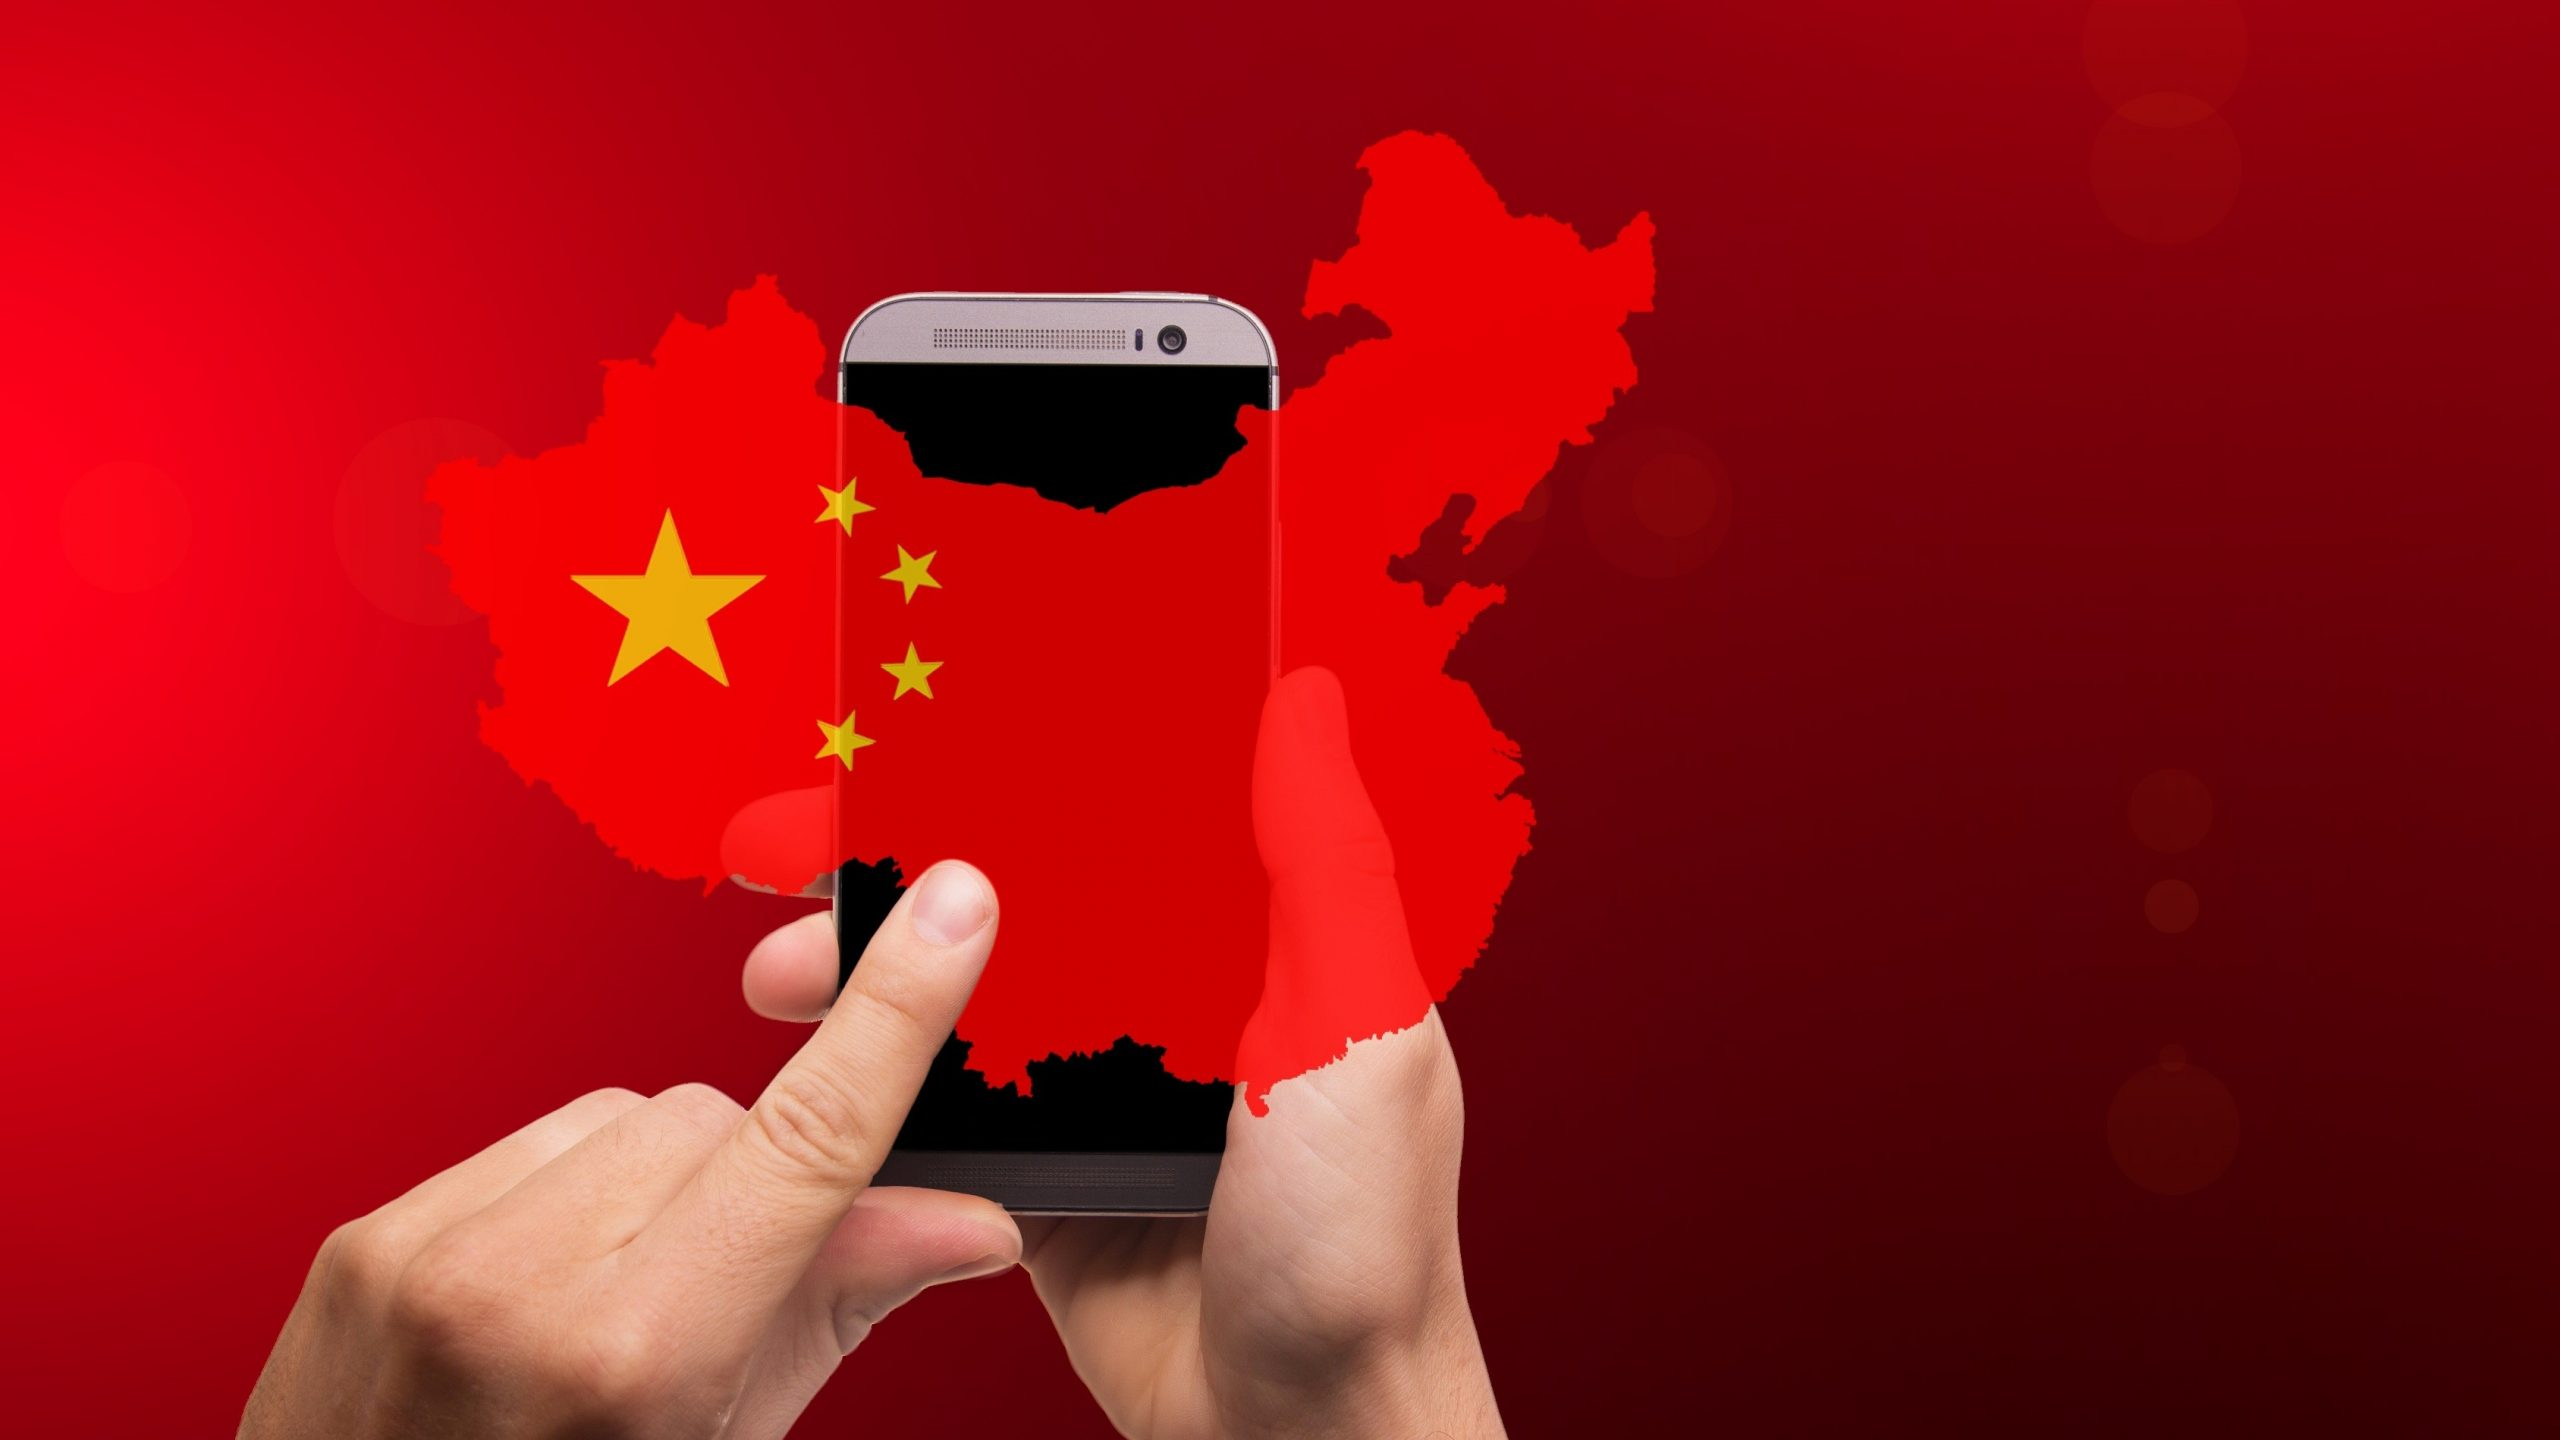 5G Network Launched in China